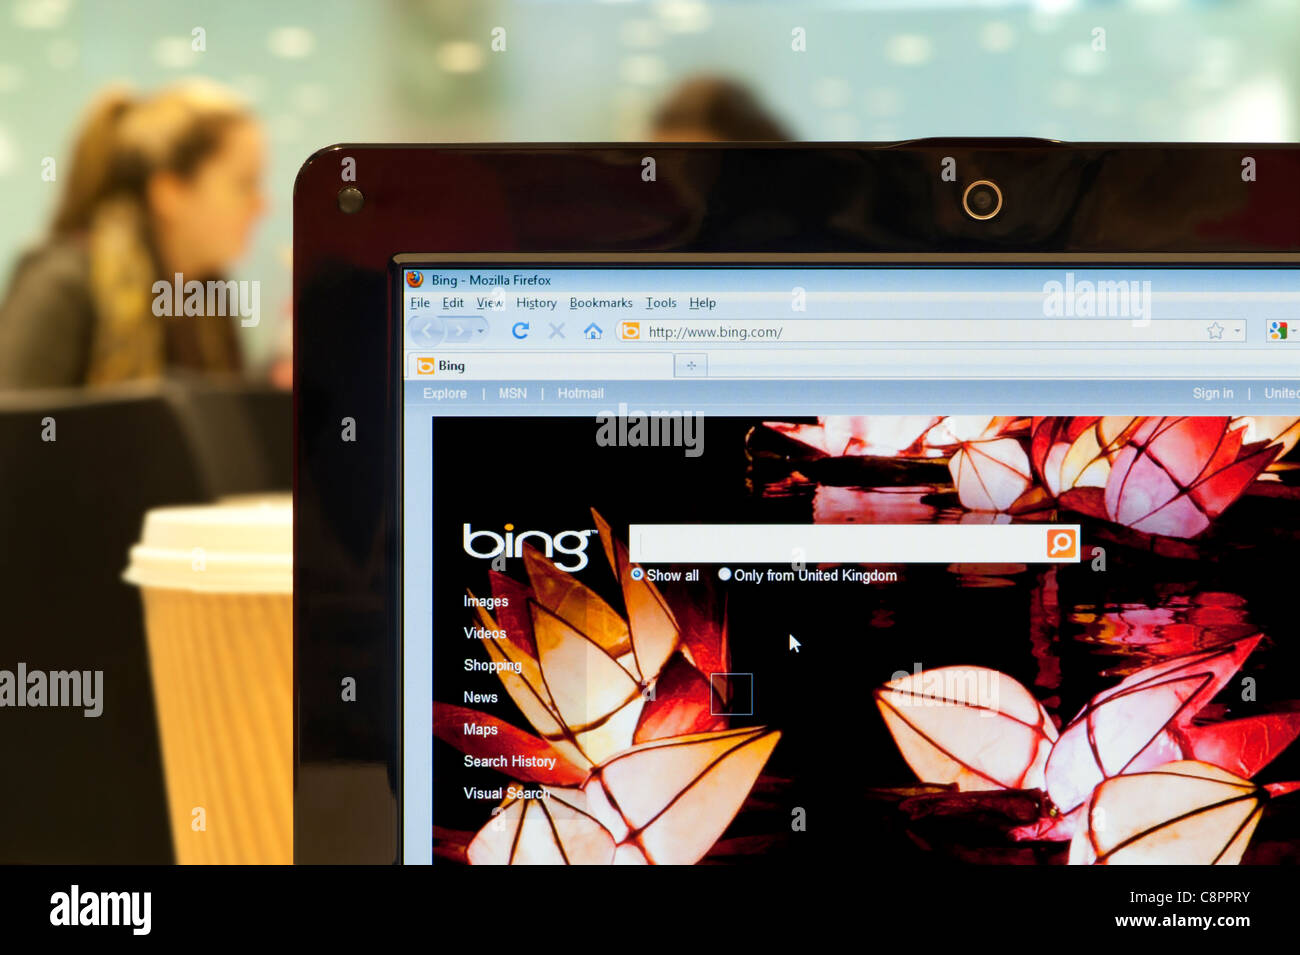 The Bing website shot in a coffee shop environment (Editorial use only: print, TV, e-book and editorial website). - Stock Image